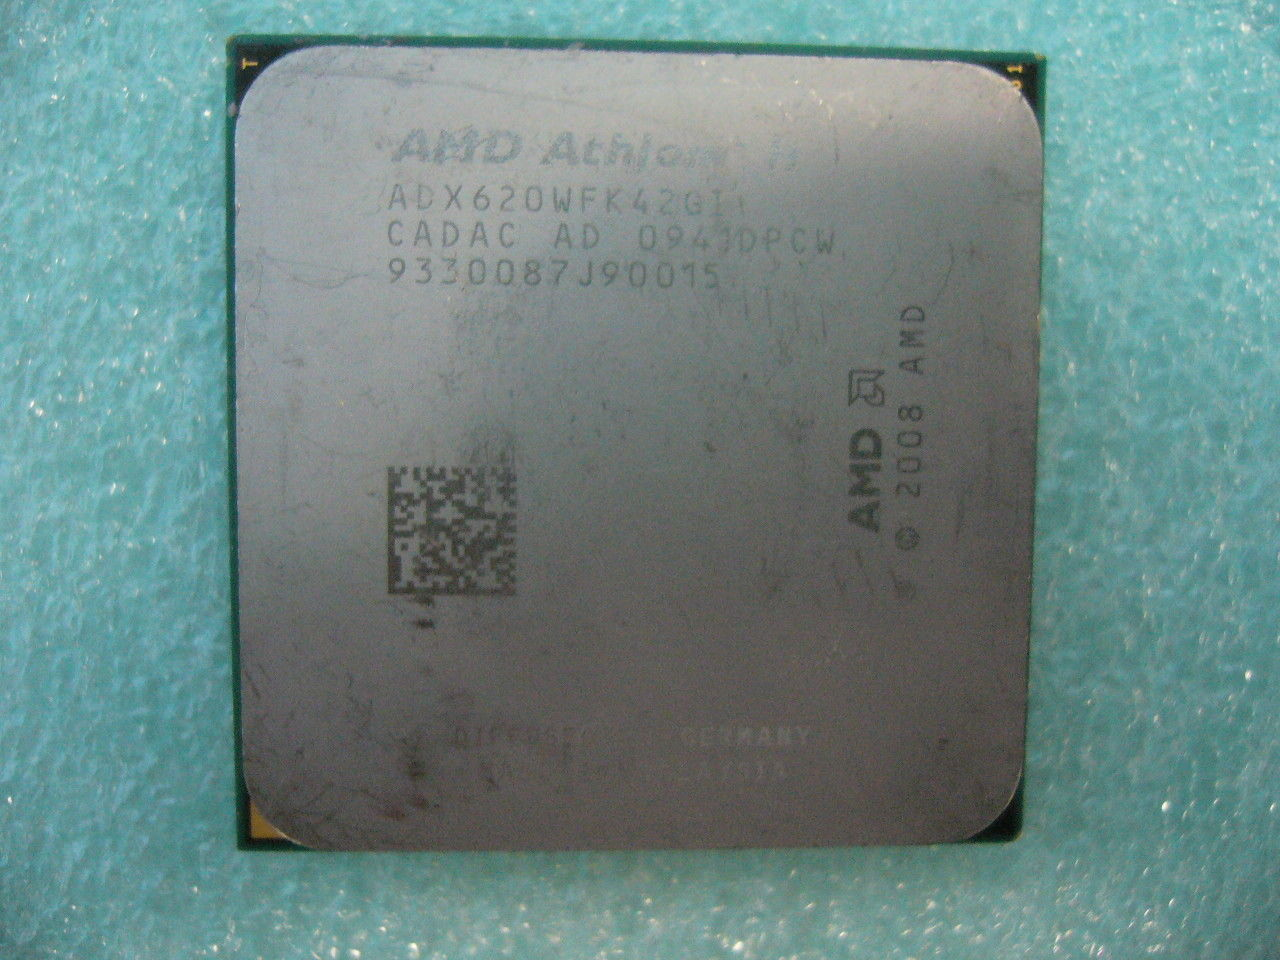 QTY 1x AMD Athlon II X4 620 2.6 GHz Quad-Core (ADX620WFK42GI CPU AM3 938-Pin